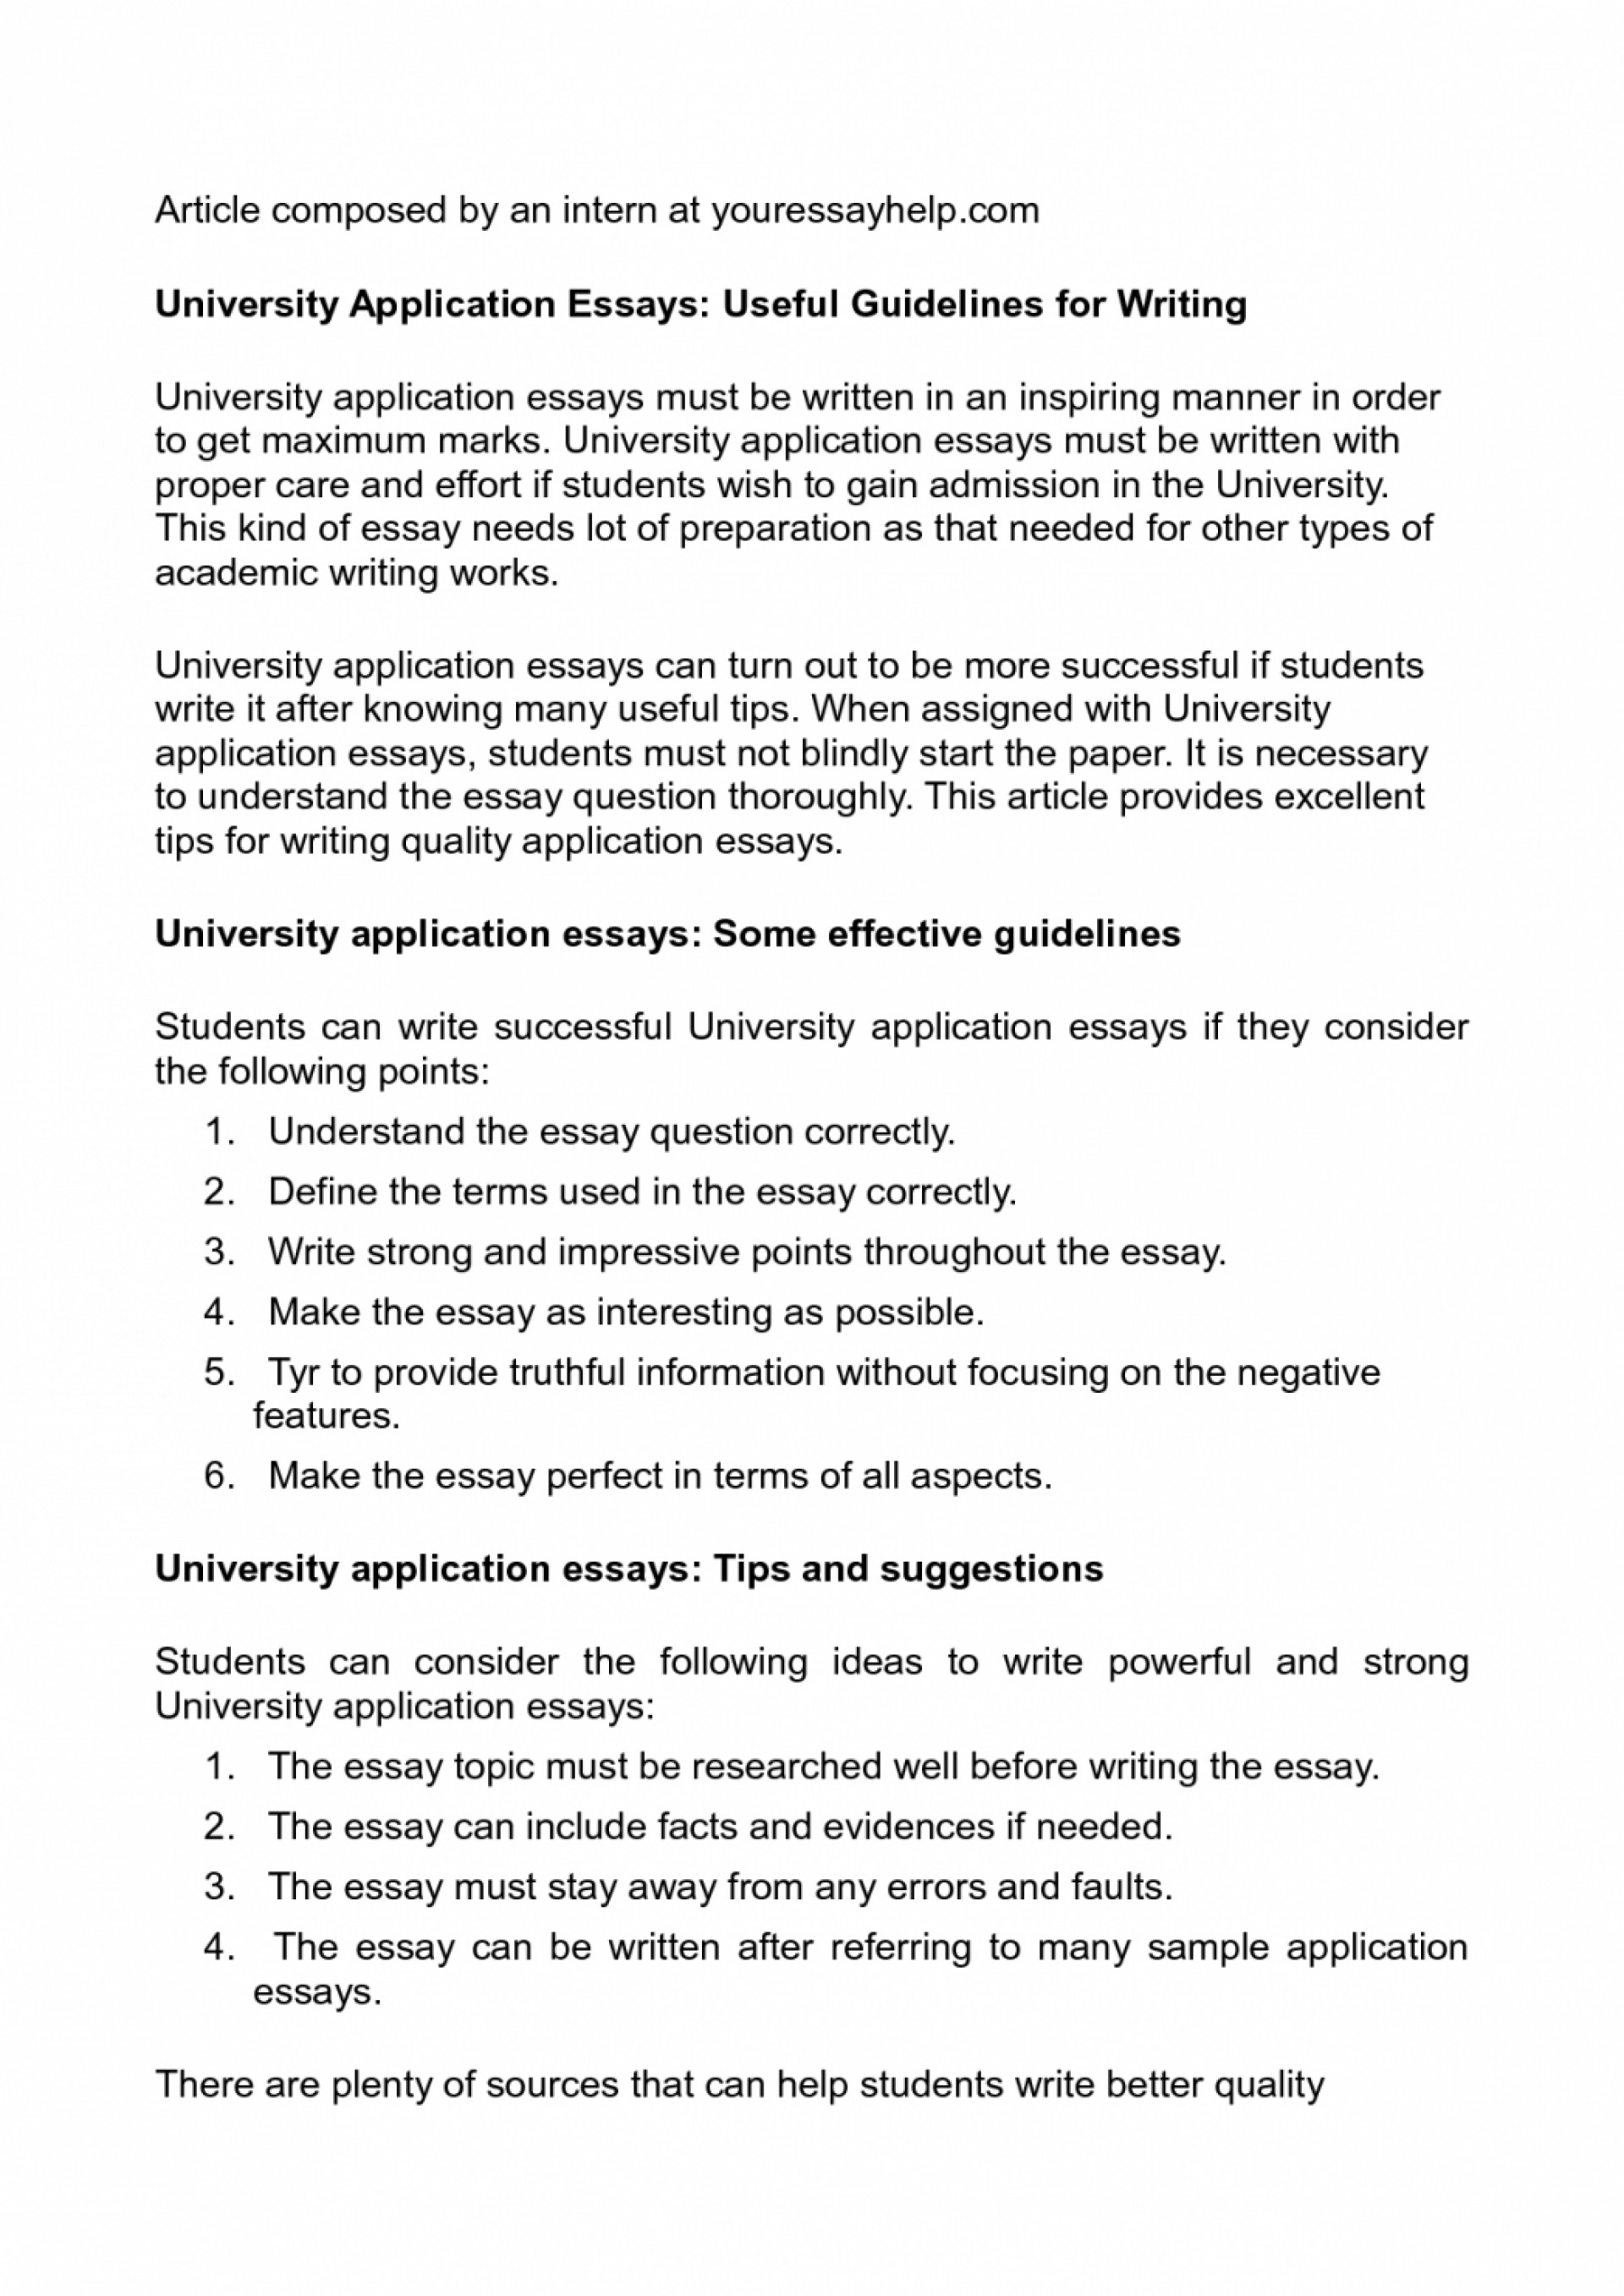 005 Define Argumentative Essay Top Writing Site For University Definition Argument Topics 1048x1482 Fantastic Claim Pdf 1920